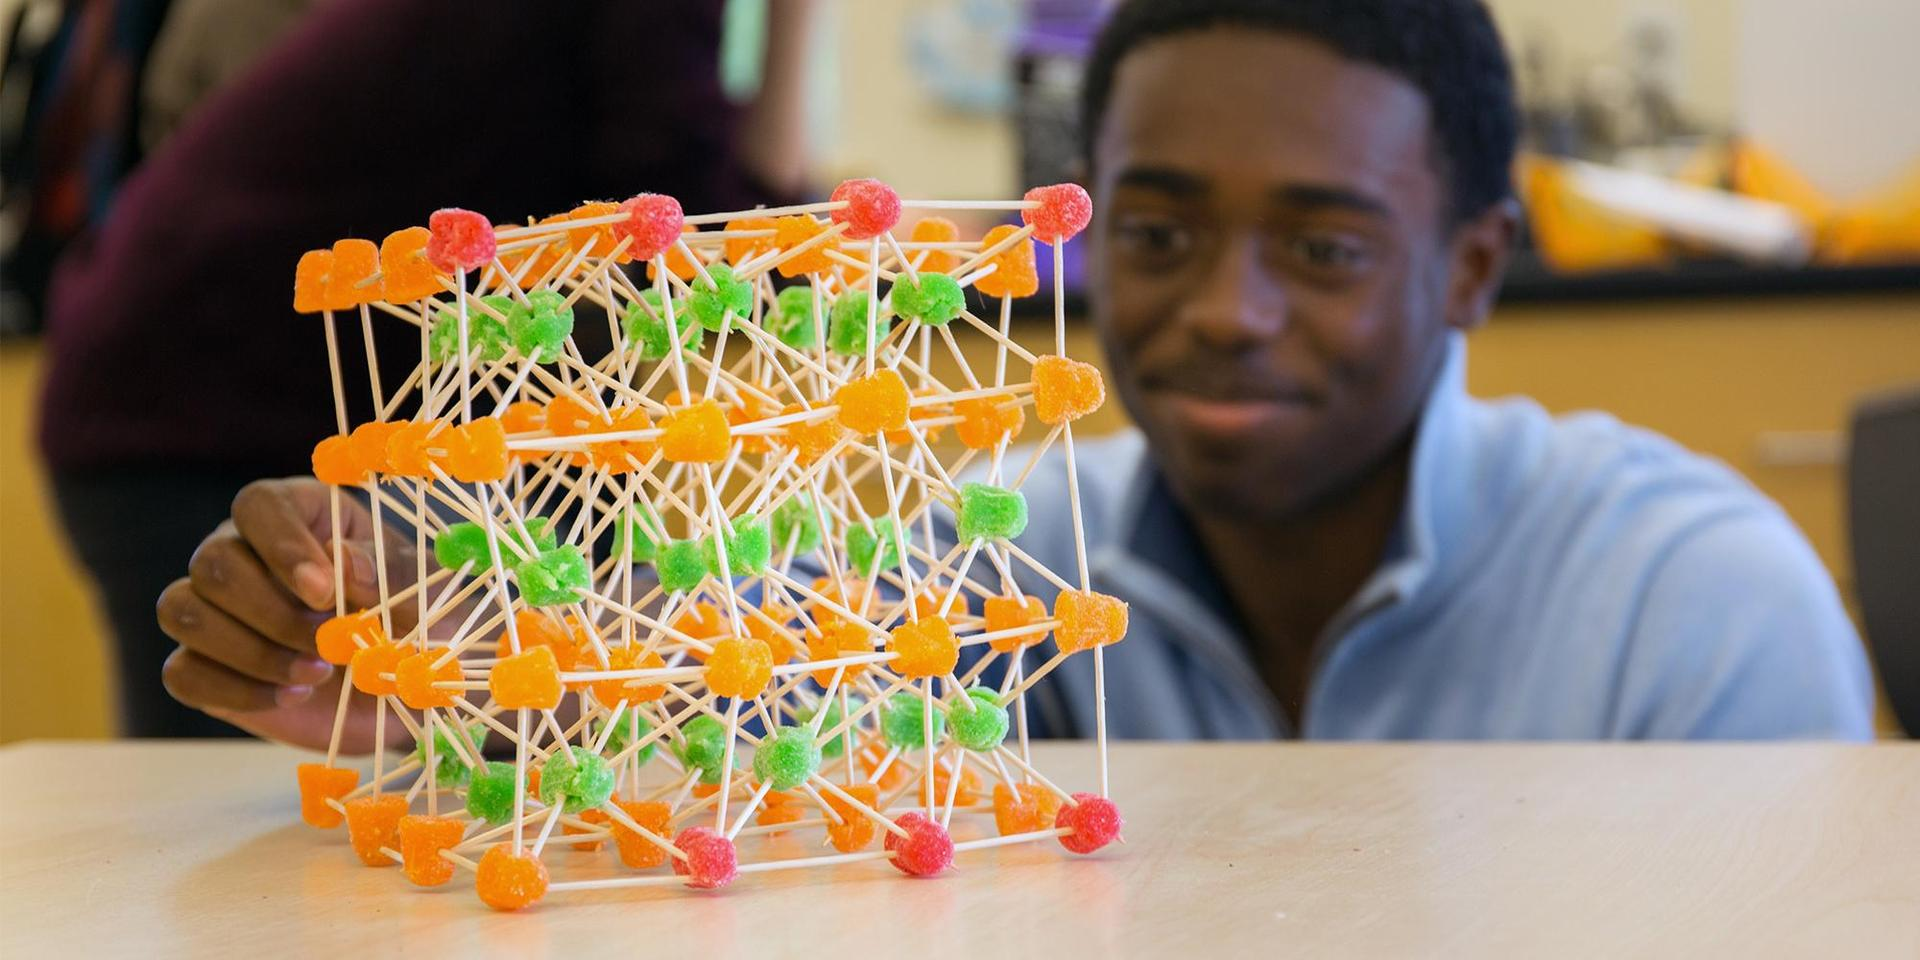 A student admires a 3D model of a tesseract-like cube made out of gumdrops and toothpicks.